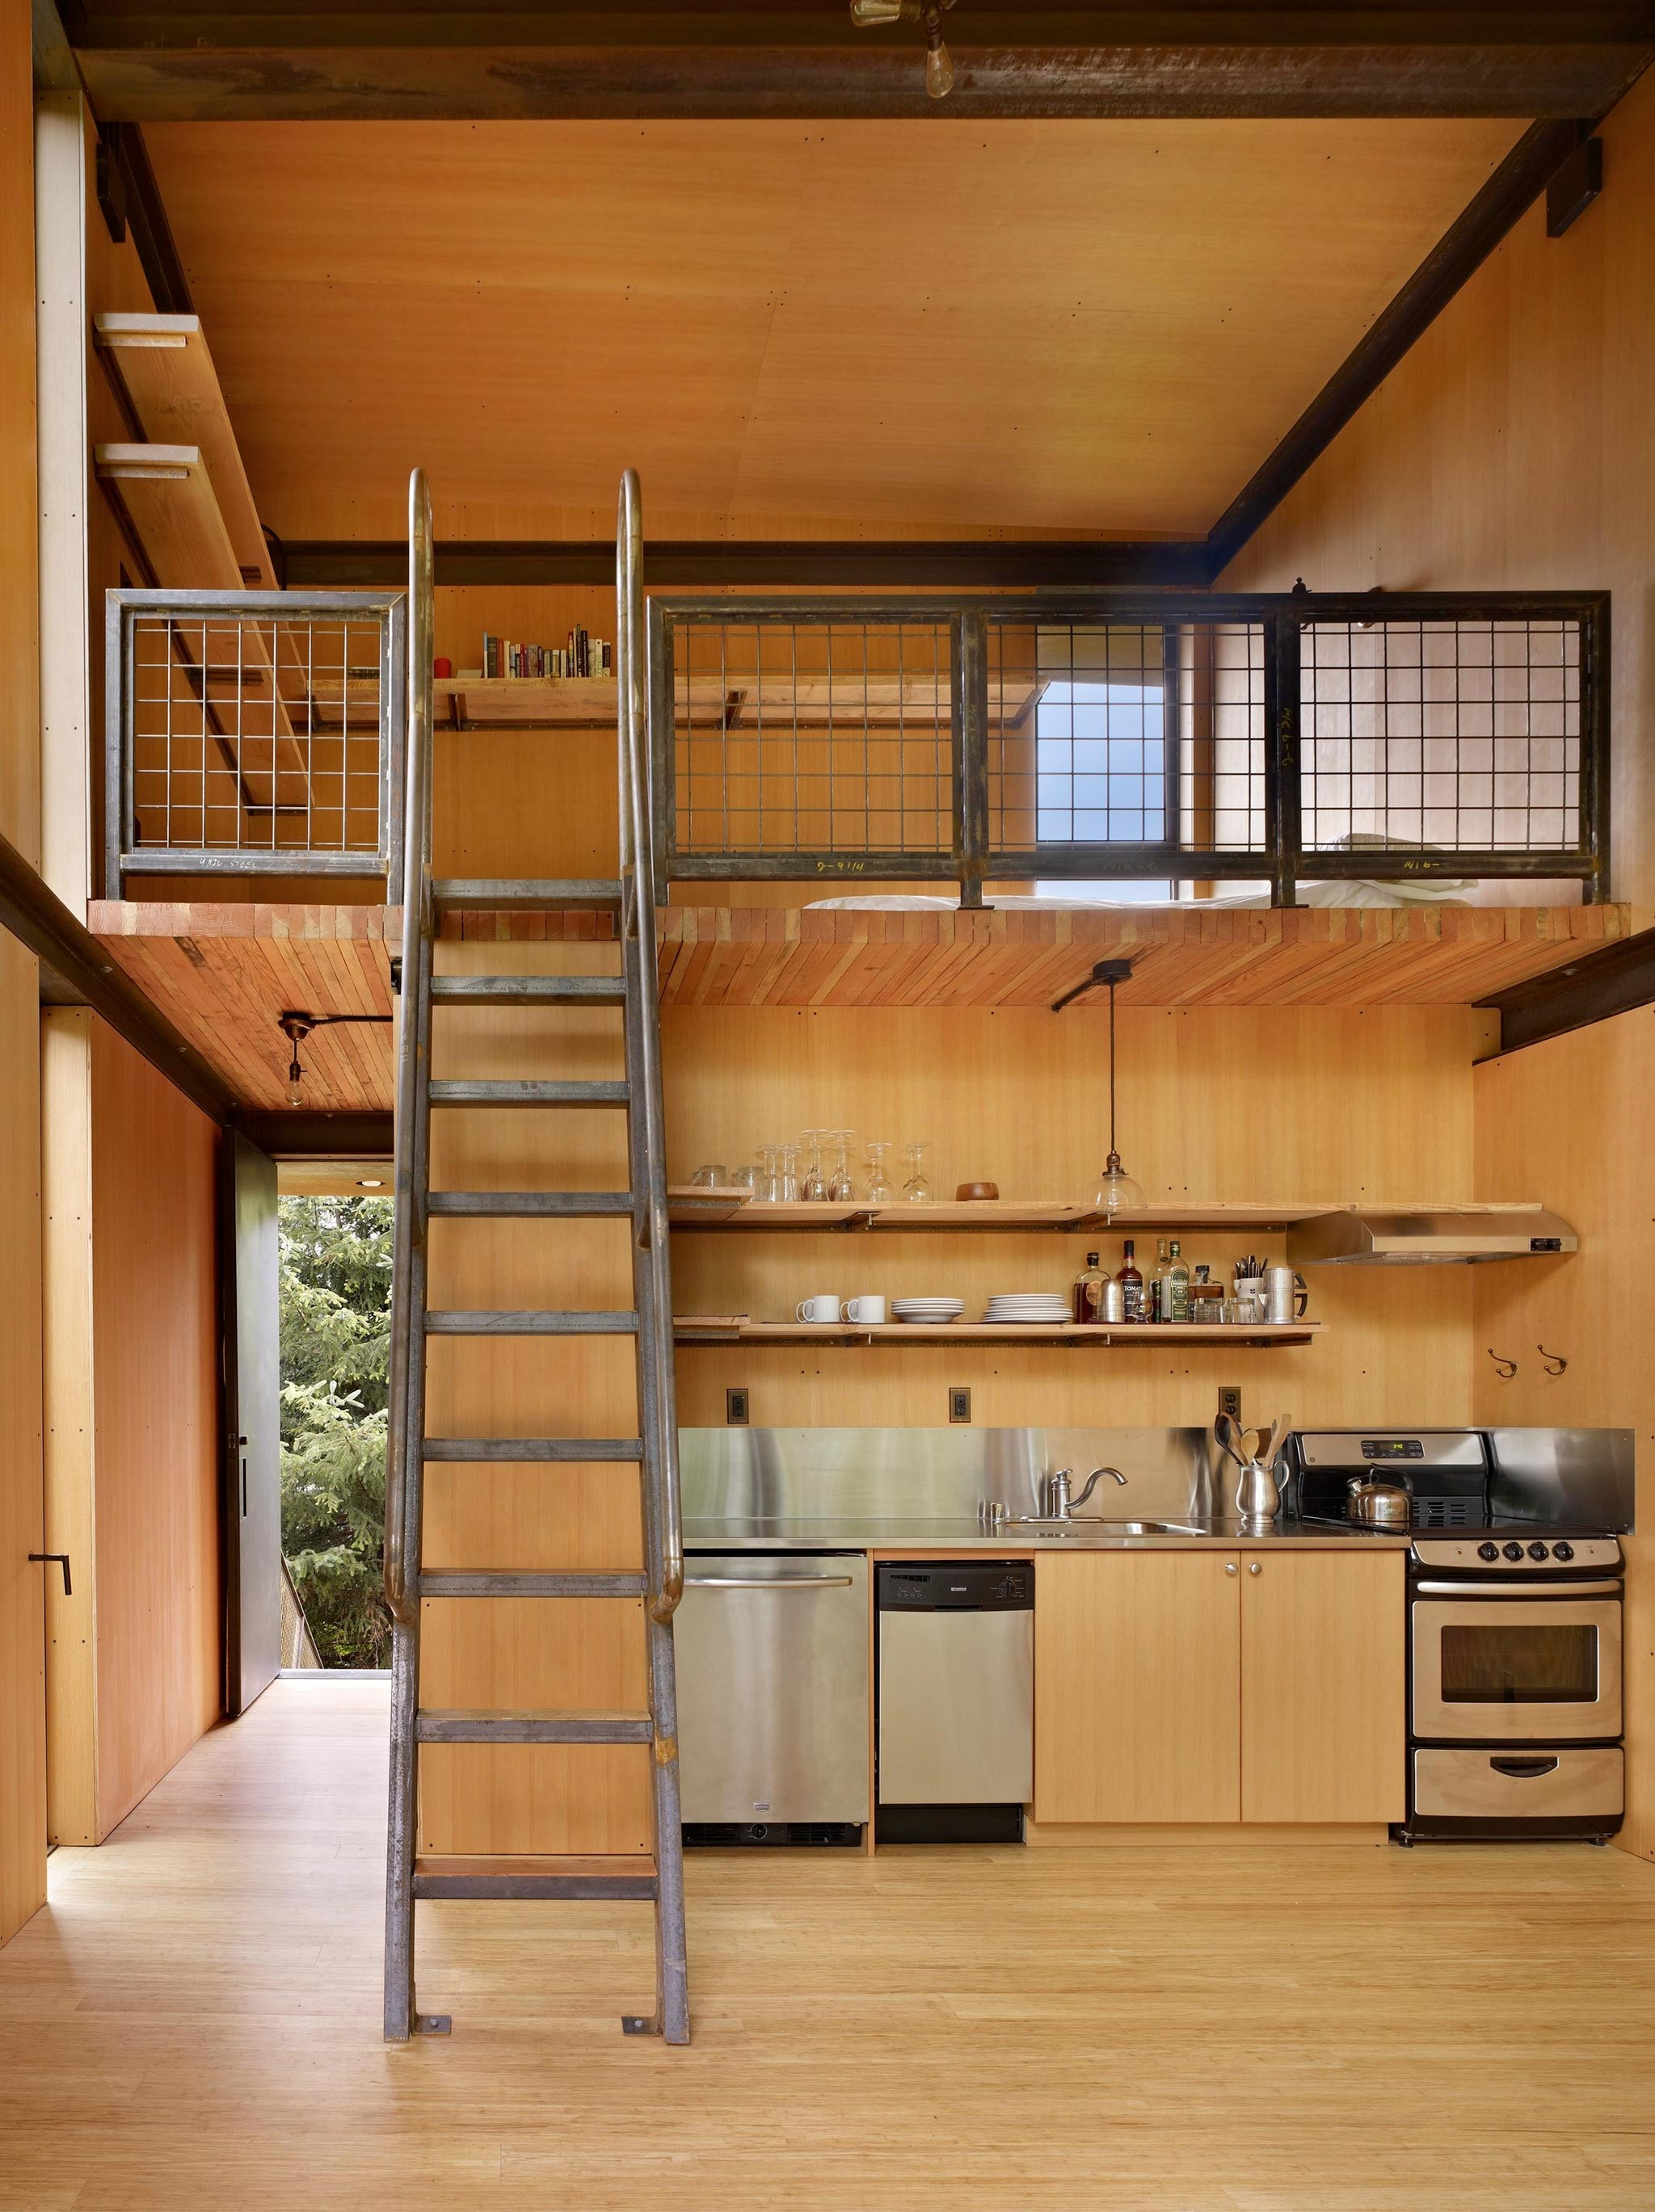 Charmant Loft With Stairs 1